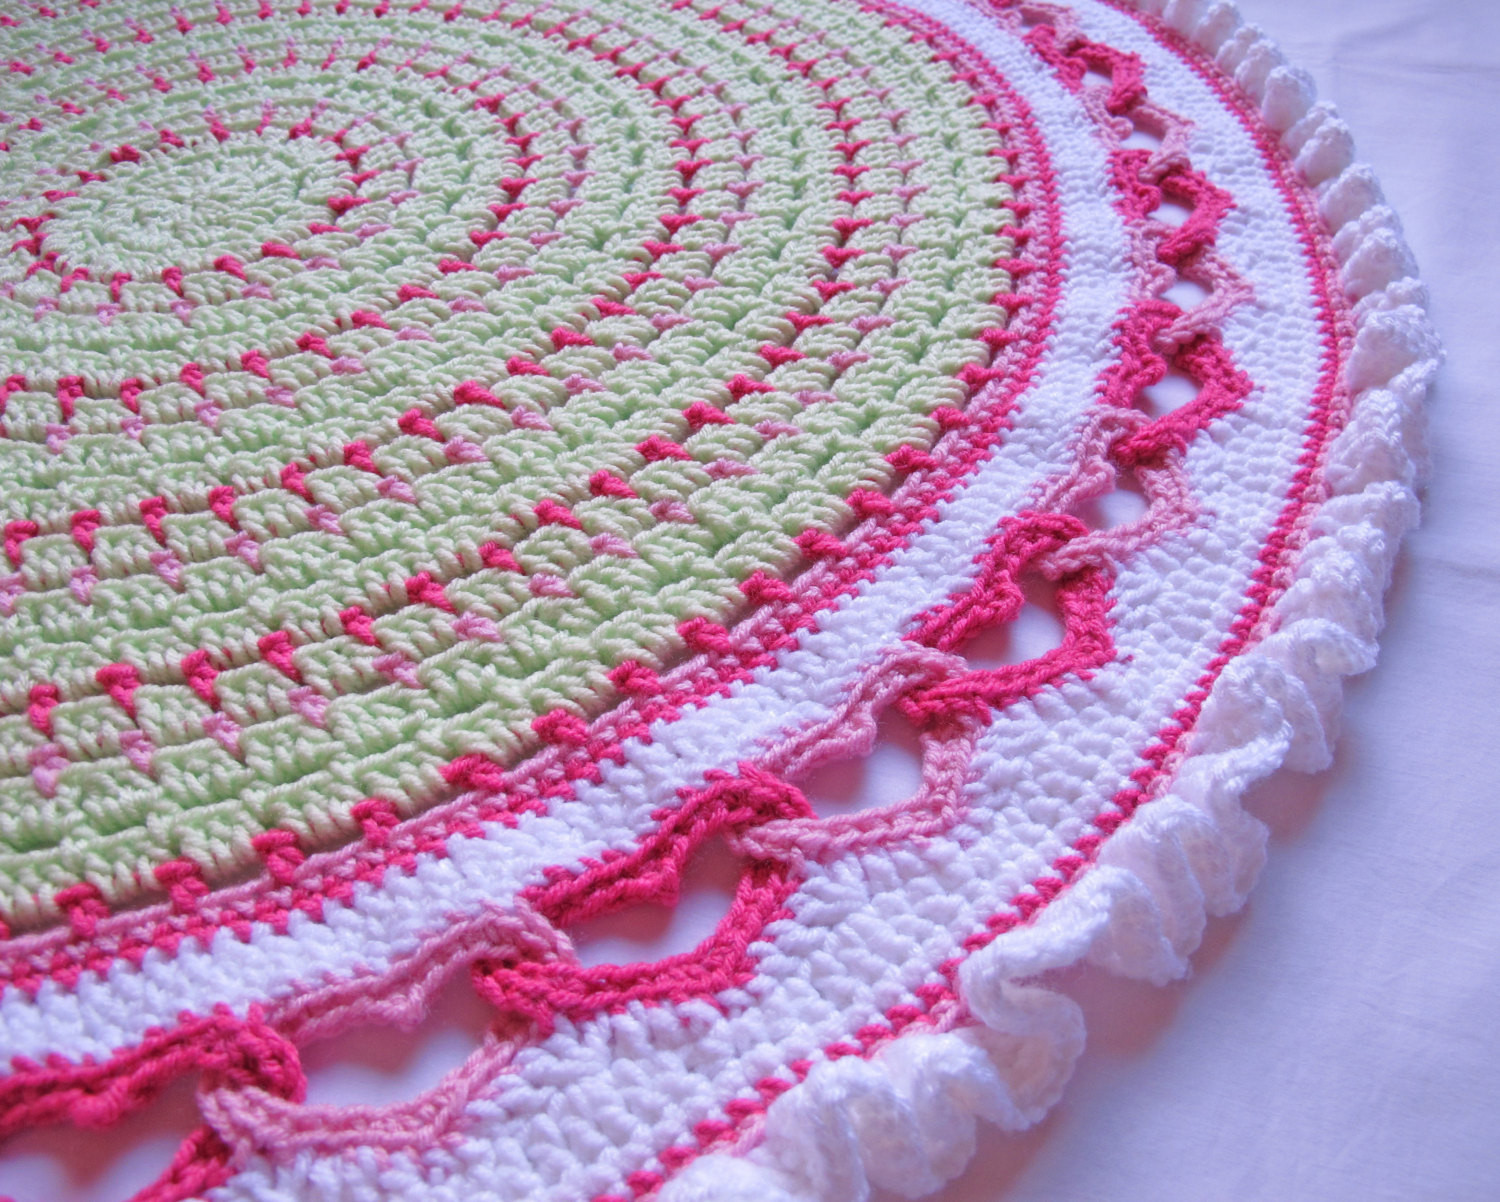 Inspirational Crochet Patterns for Round Baby Blankets Dancox for Round Crochet Blanket Of Fresh 46 Models Round Crochet Blanket